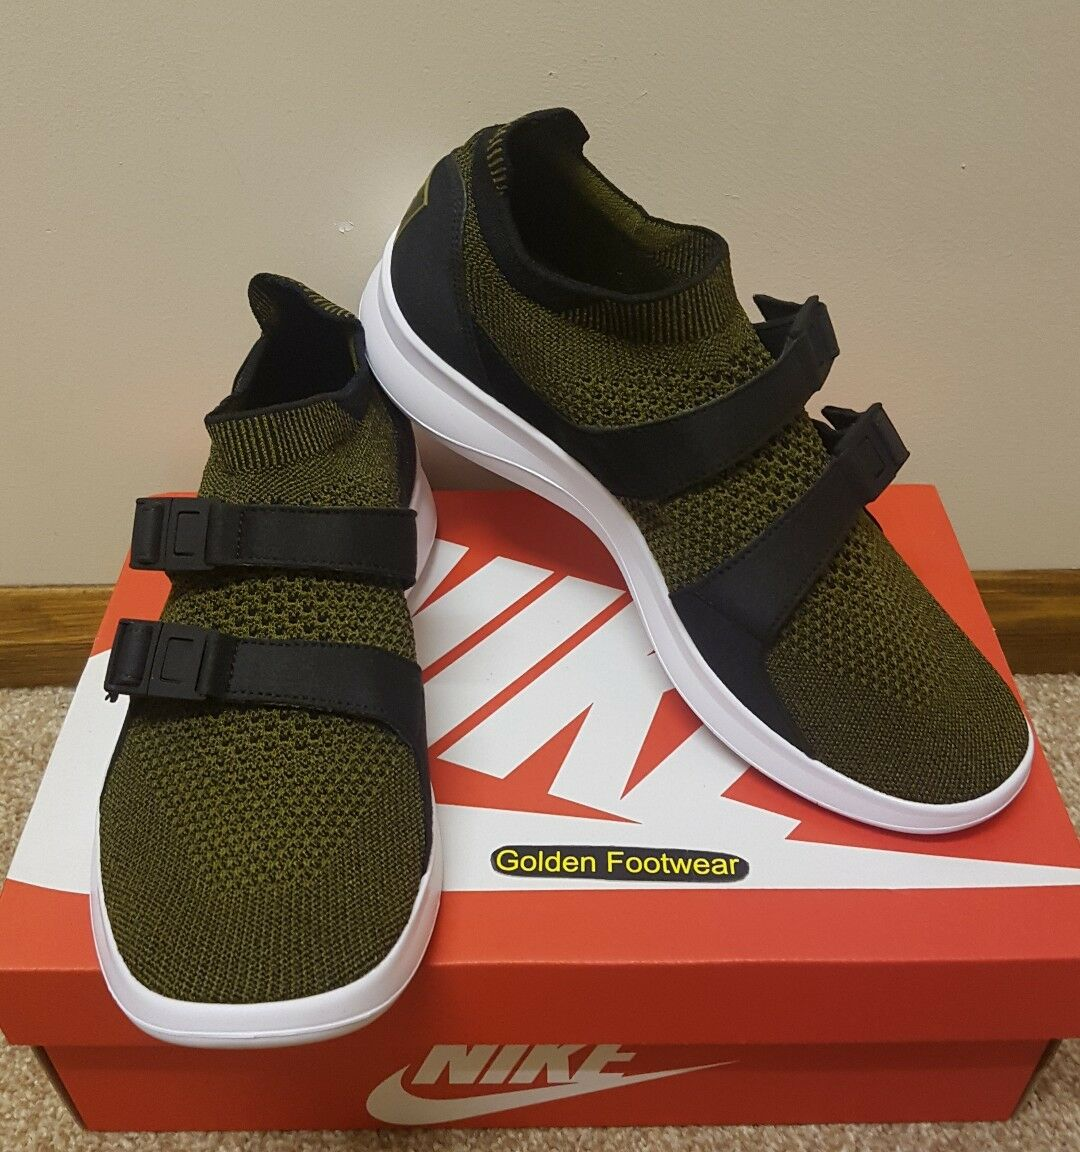 Nike Nike Nike Air Sockracer Flyknit Size 8 UK Olive Genuine Authentic Mens Trainers Max 1 0952af